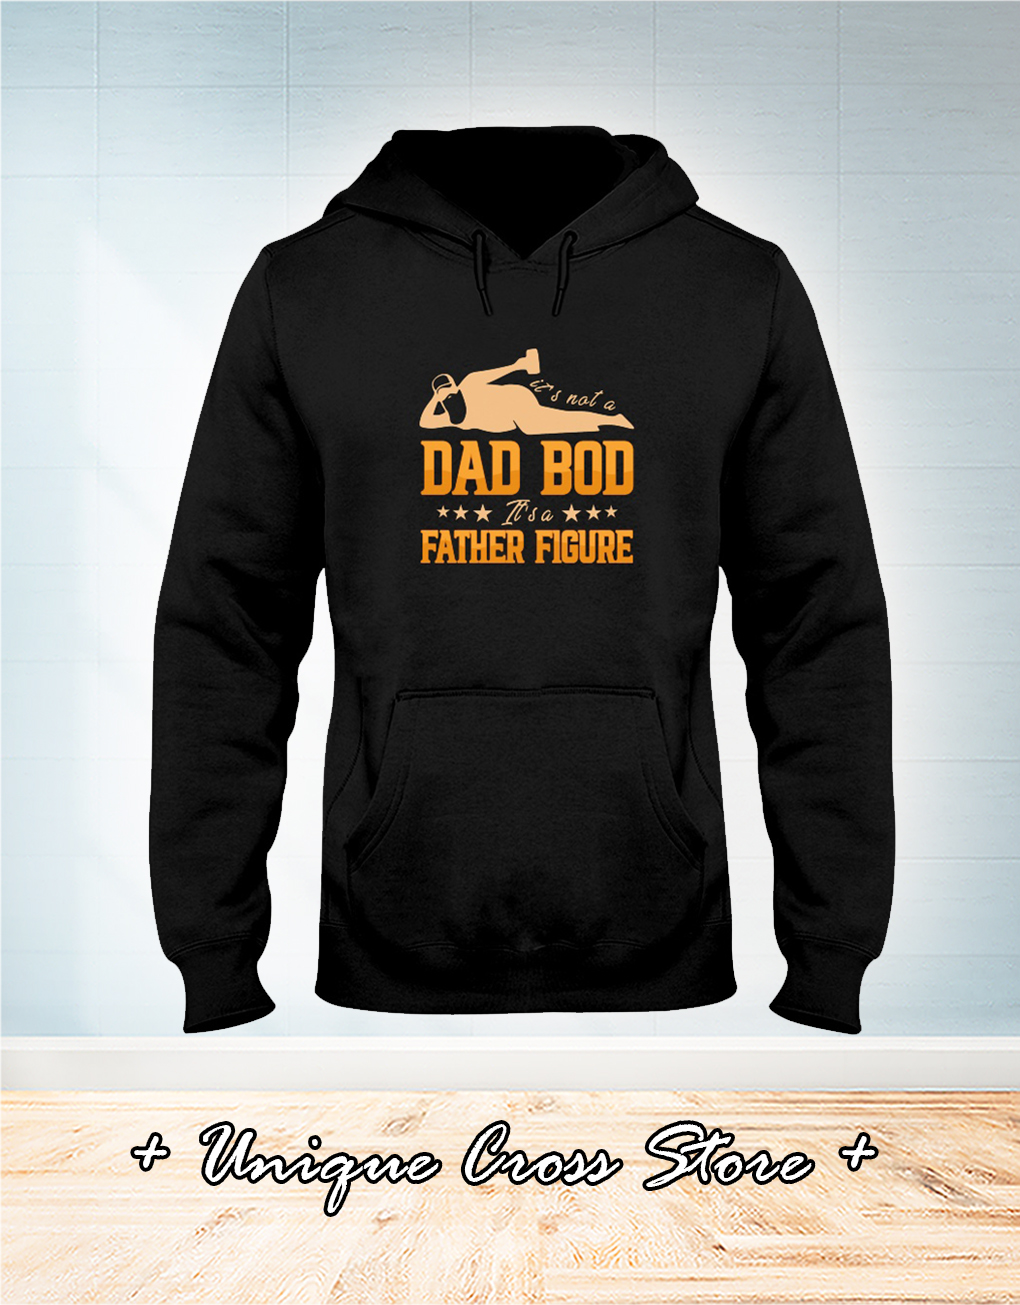 It's Not A Dad Bod It's A Father Figure hoodie